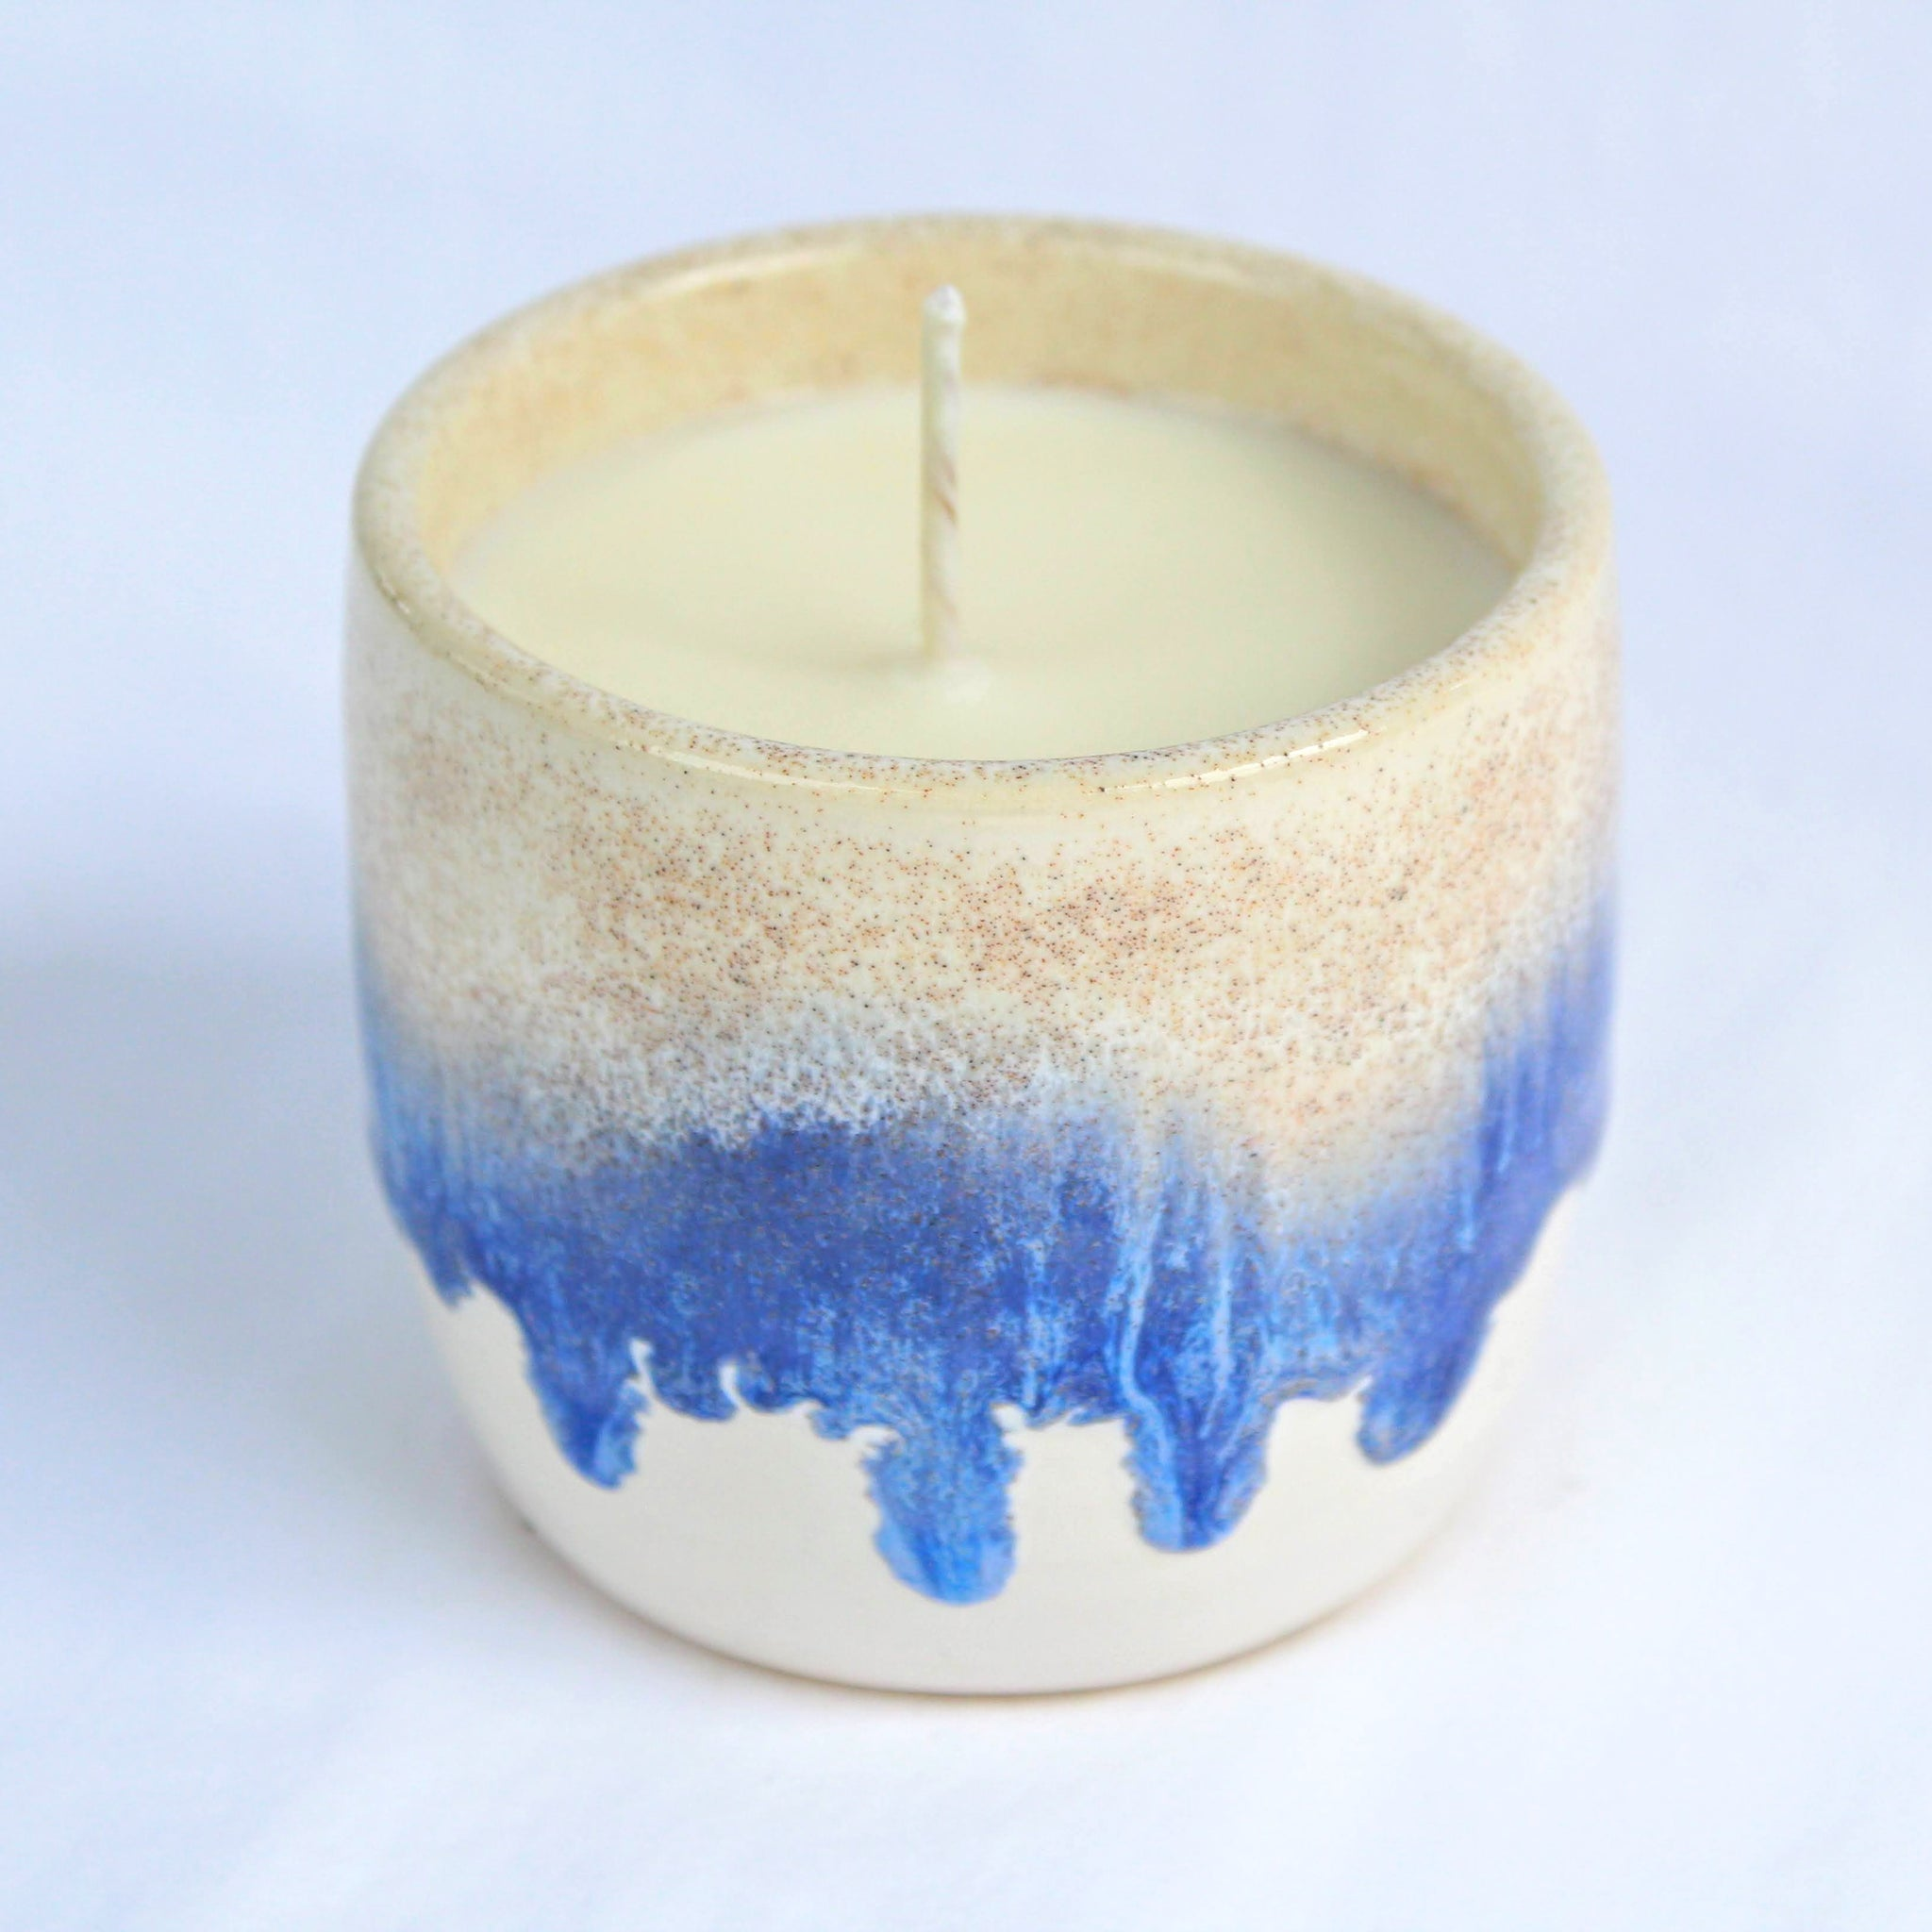 Ashen Ceramics Ocean Candle